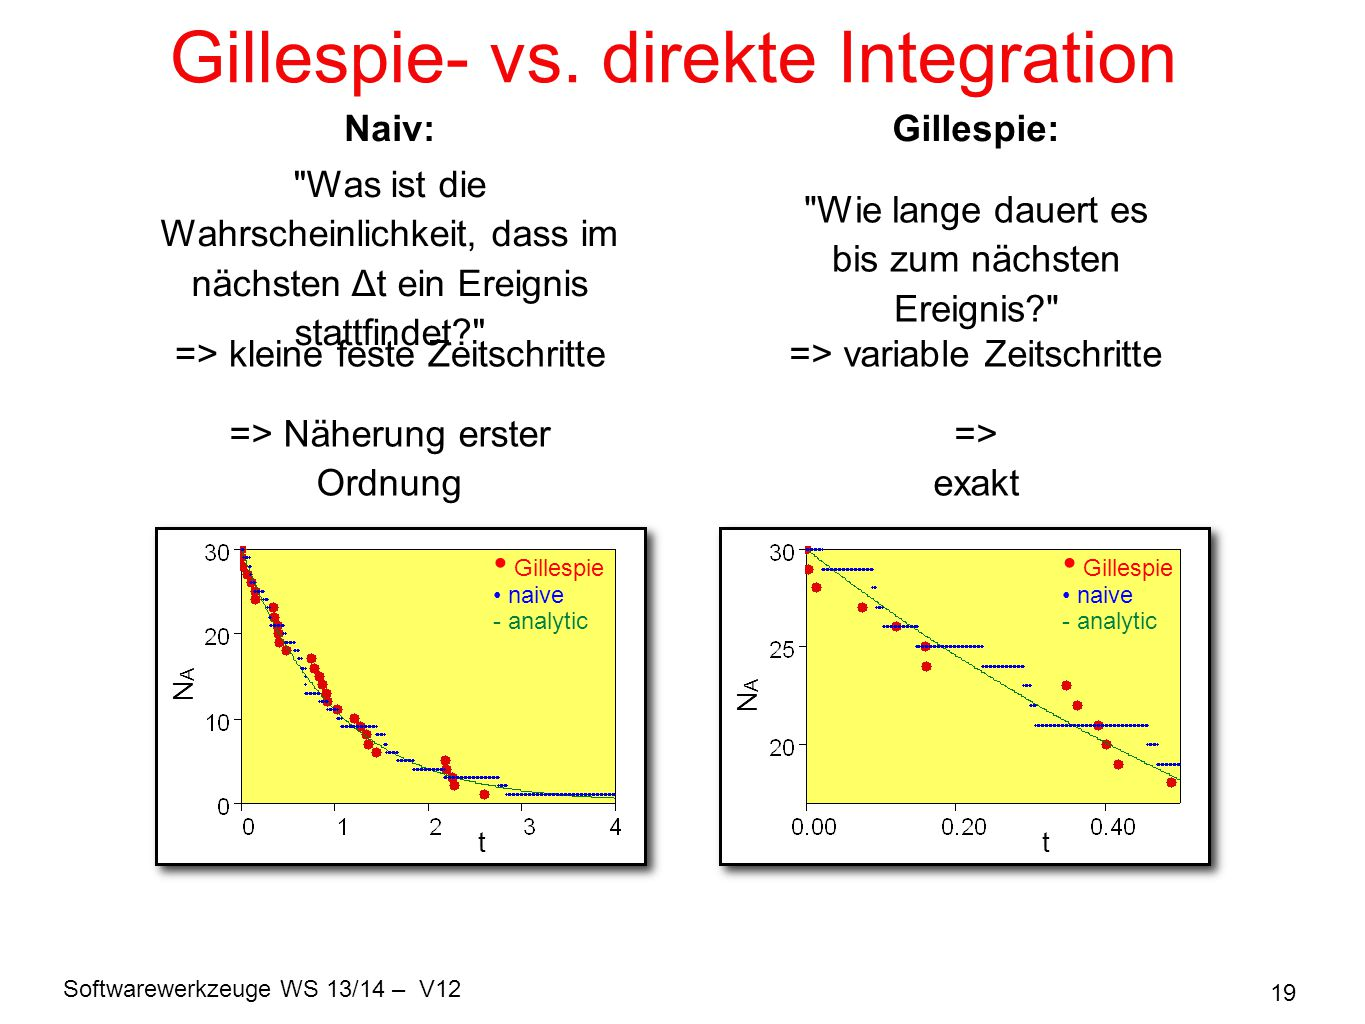 Gillespie- vs. direkte Integration